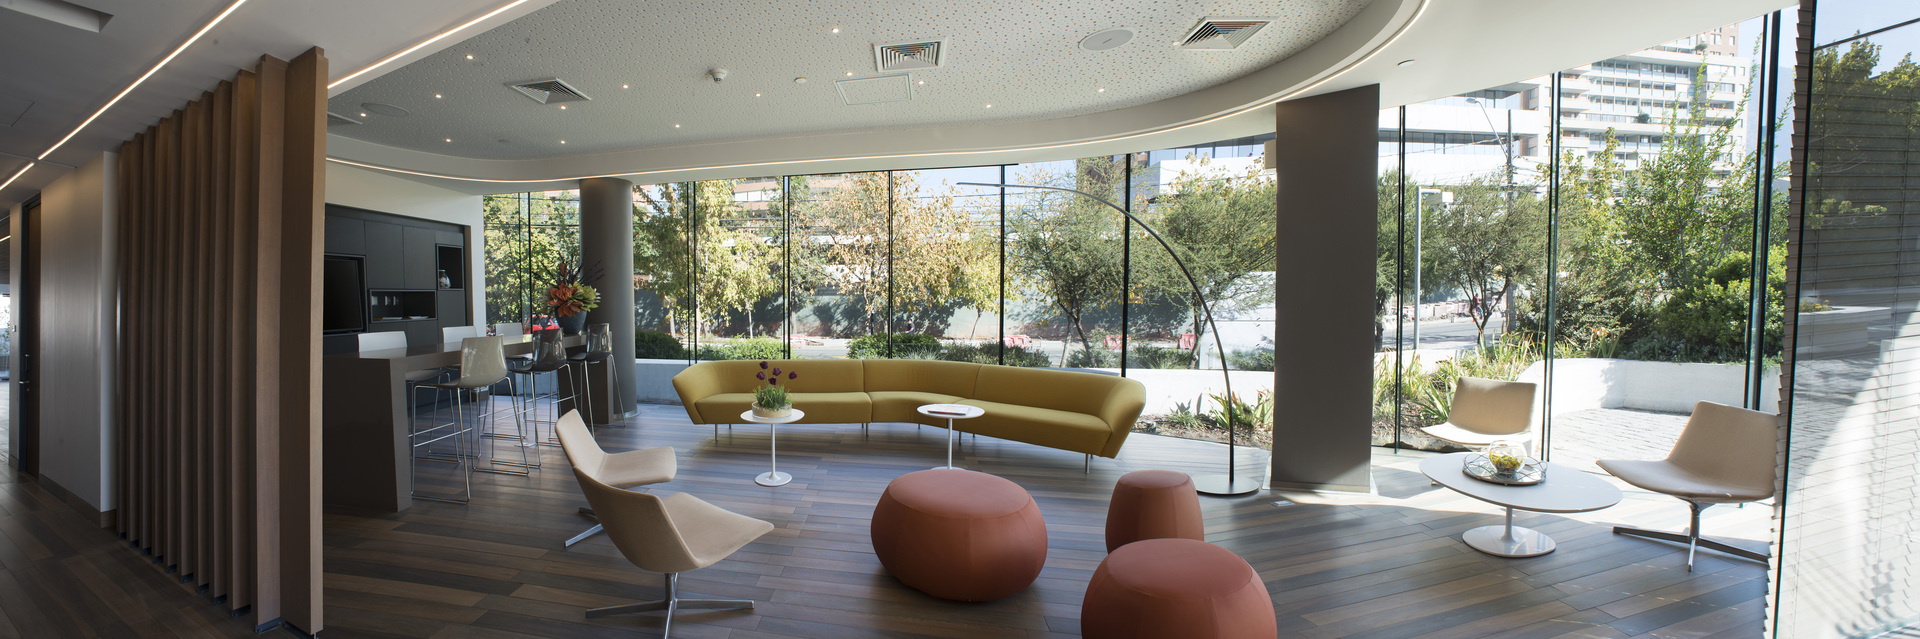 Blind dating pelicula completa en Español Latino